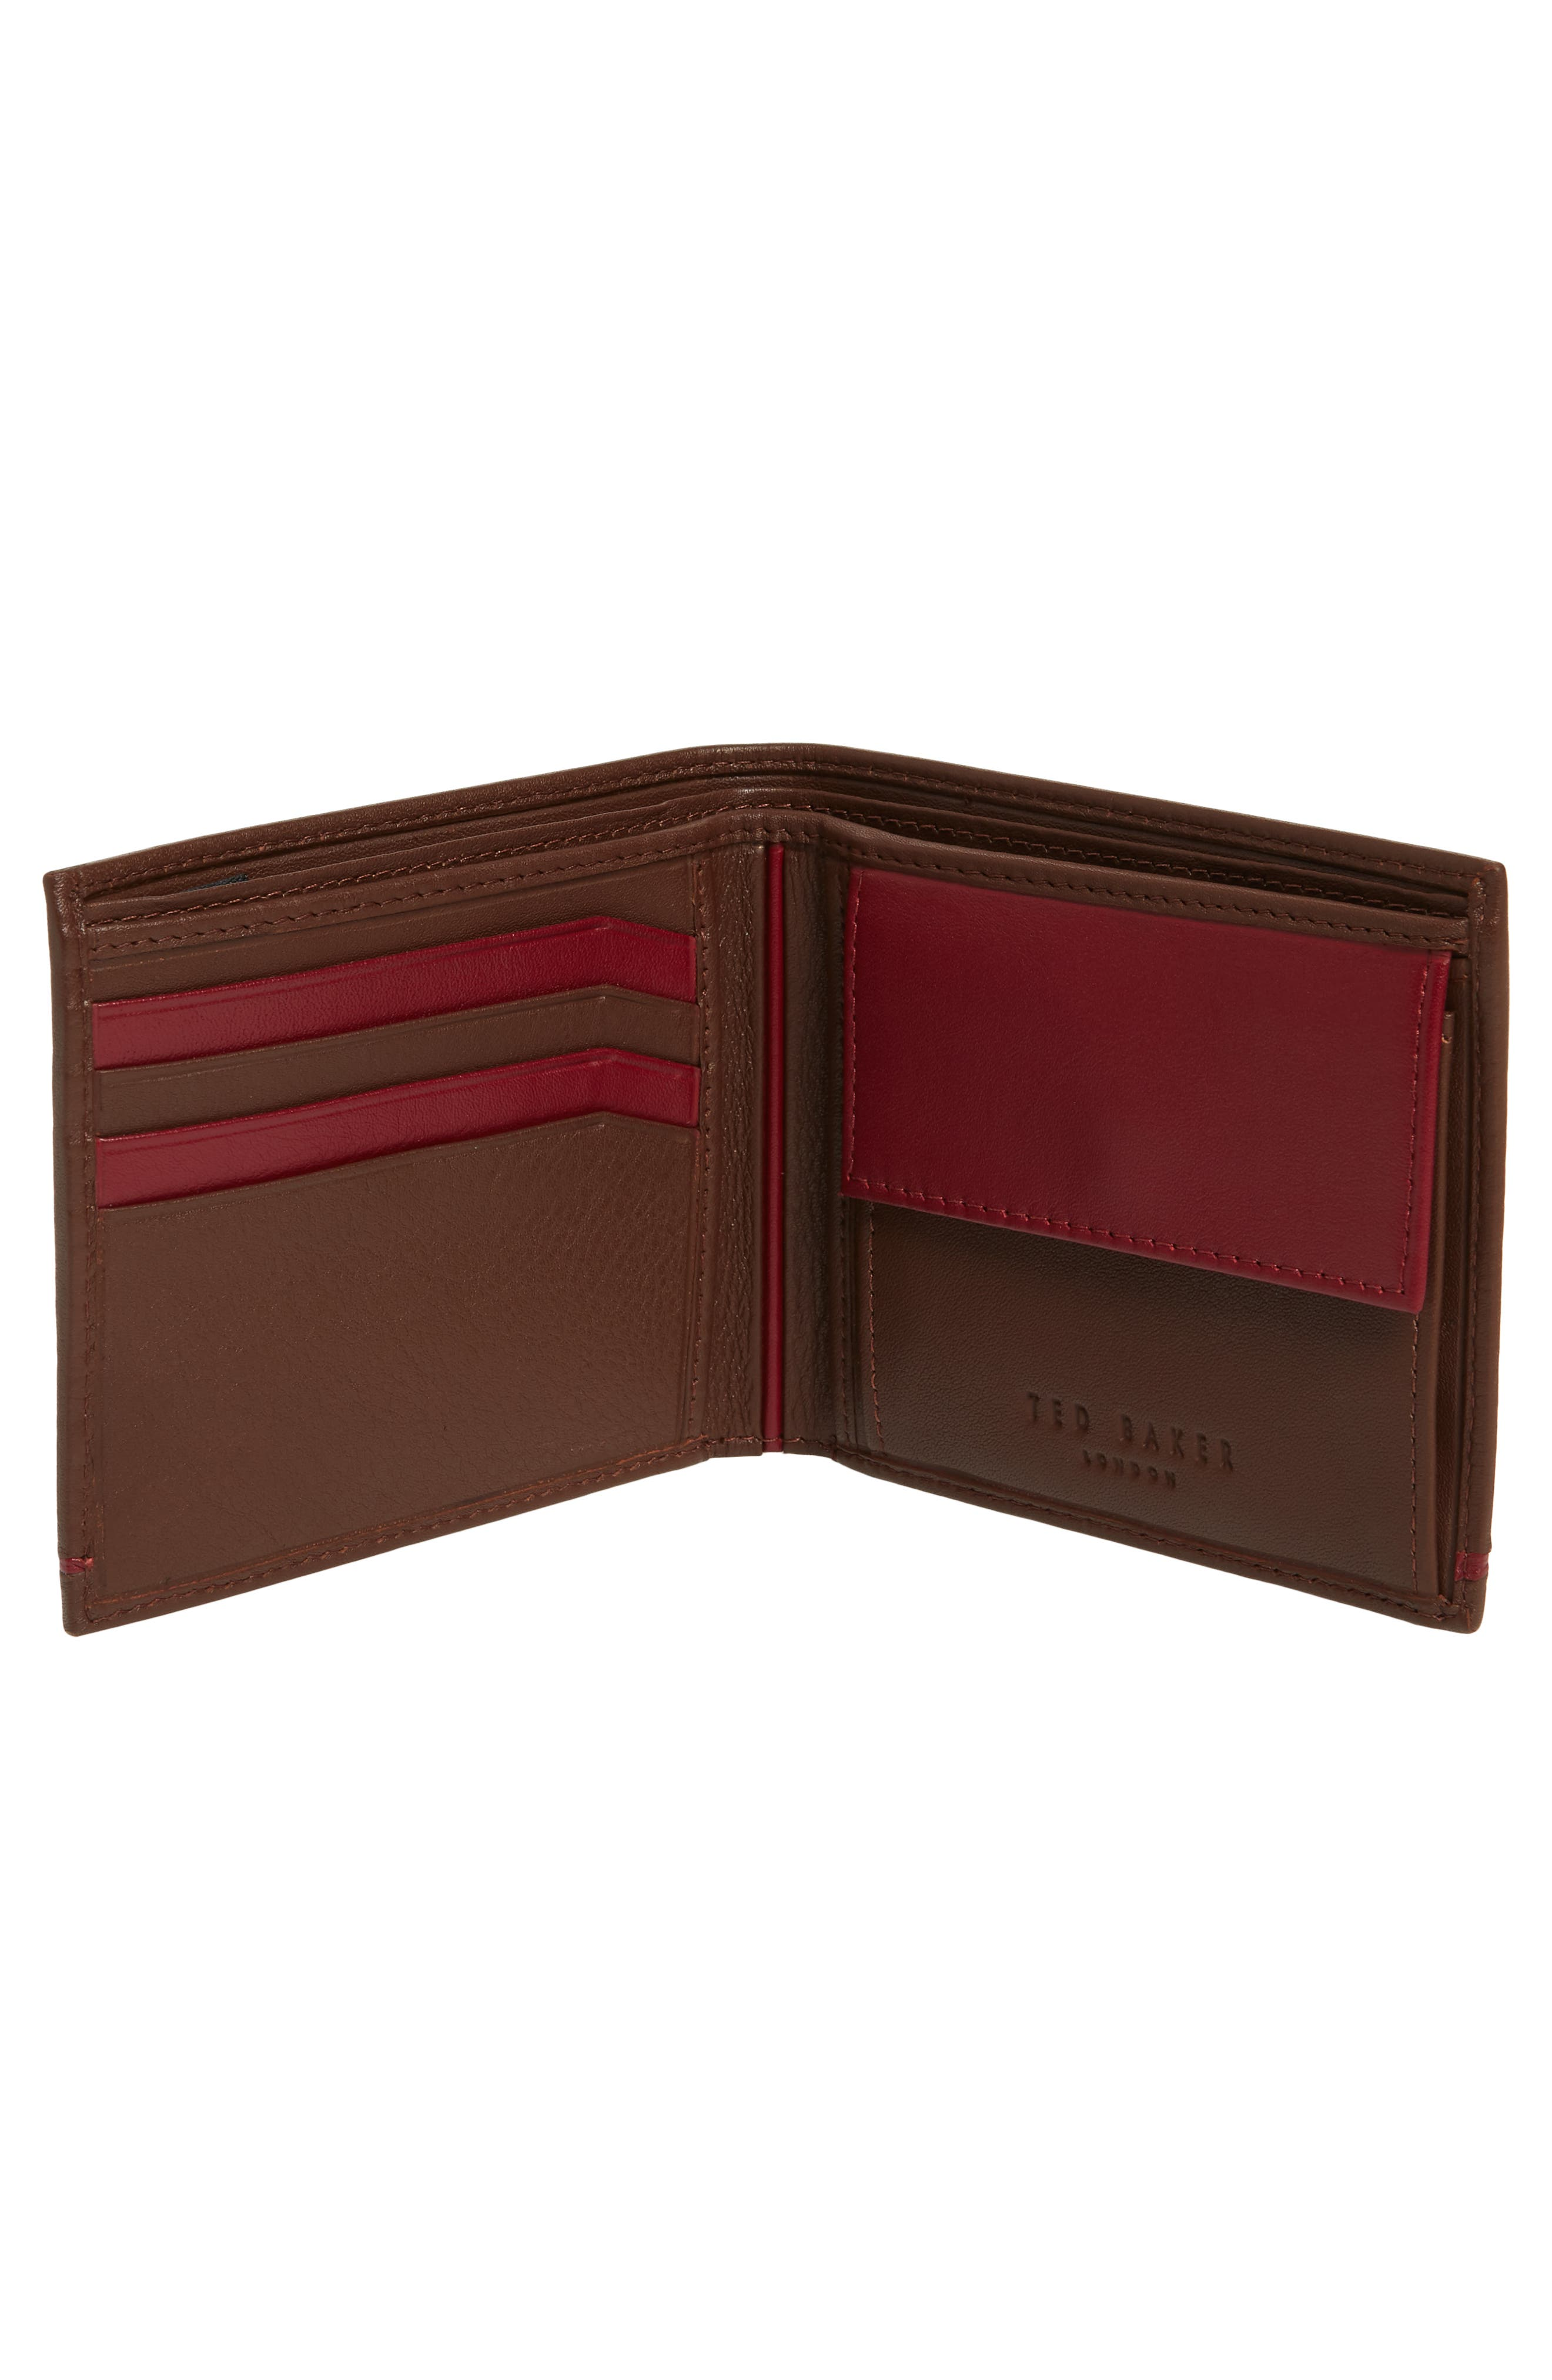 Dooree Leather Wallet,                             Alternate thumbnail 2, color,                             217